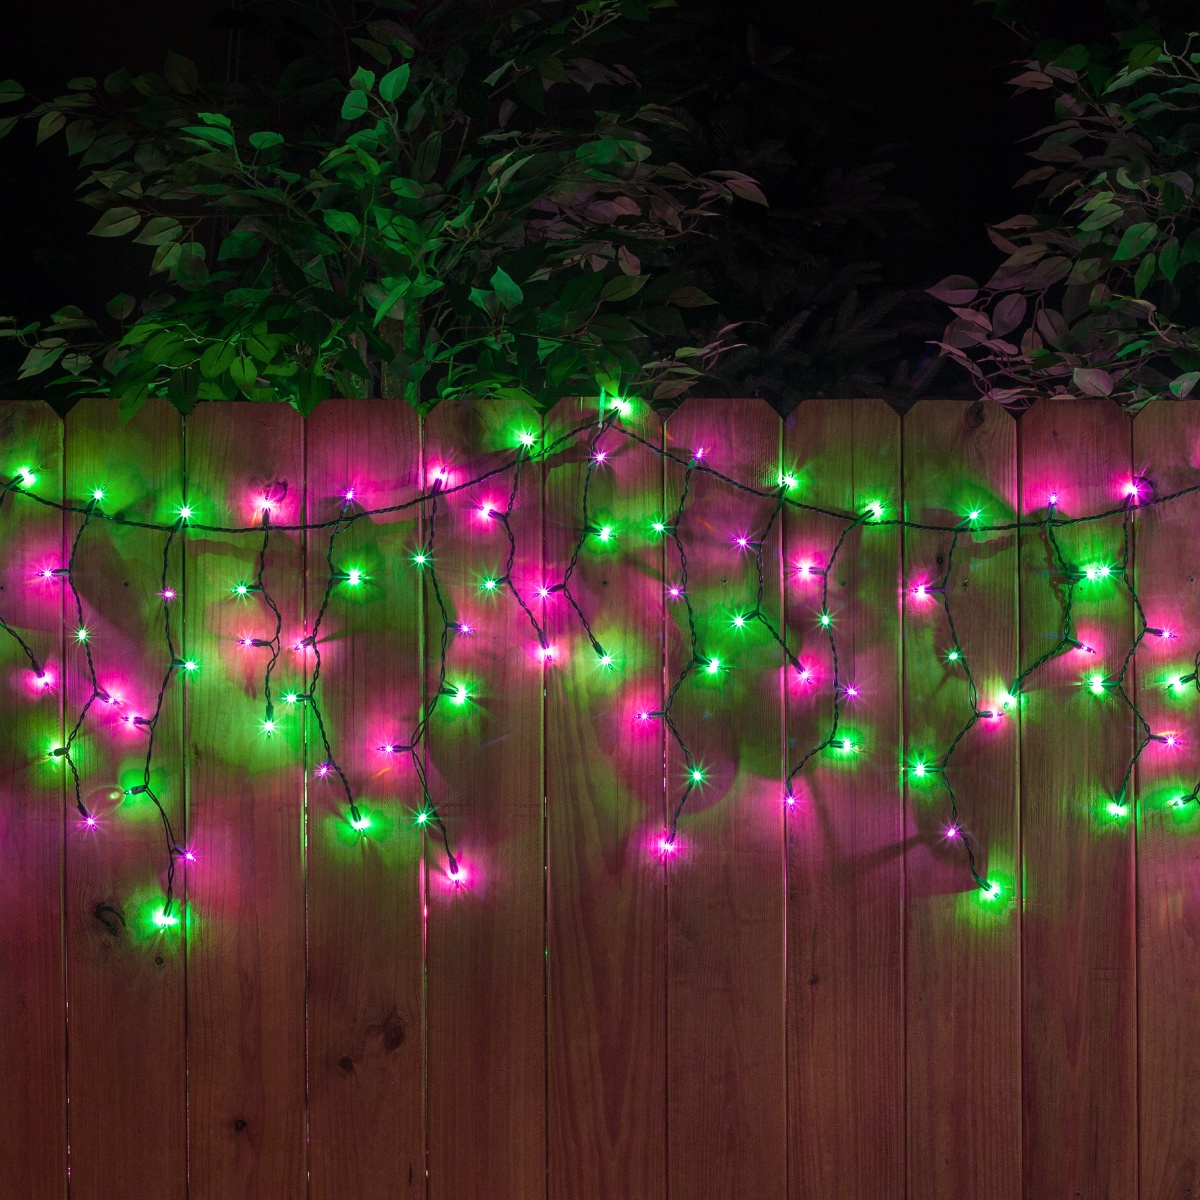 150 Halloween Icicle Lights PurpleGreen Black Wire  Yard Envy